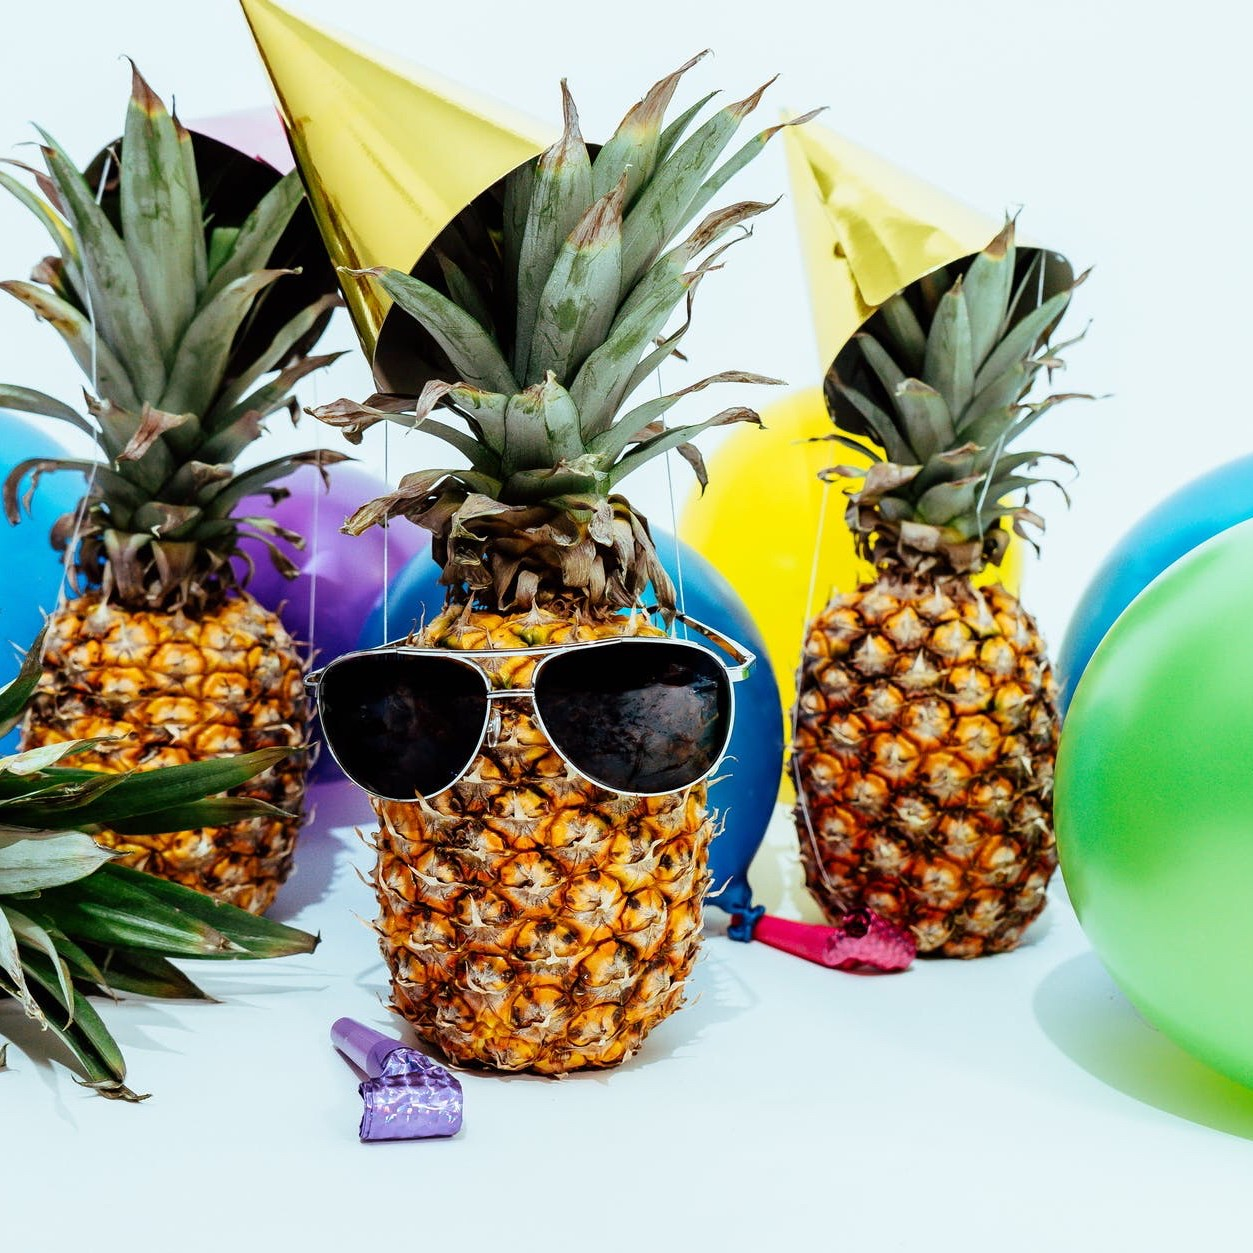 Pieneapples as the how to host a party category